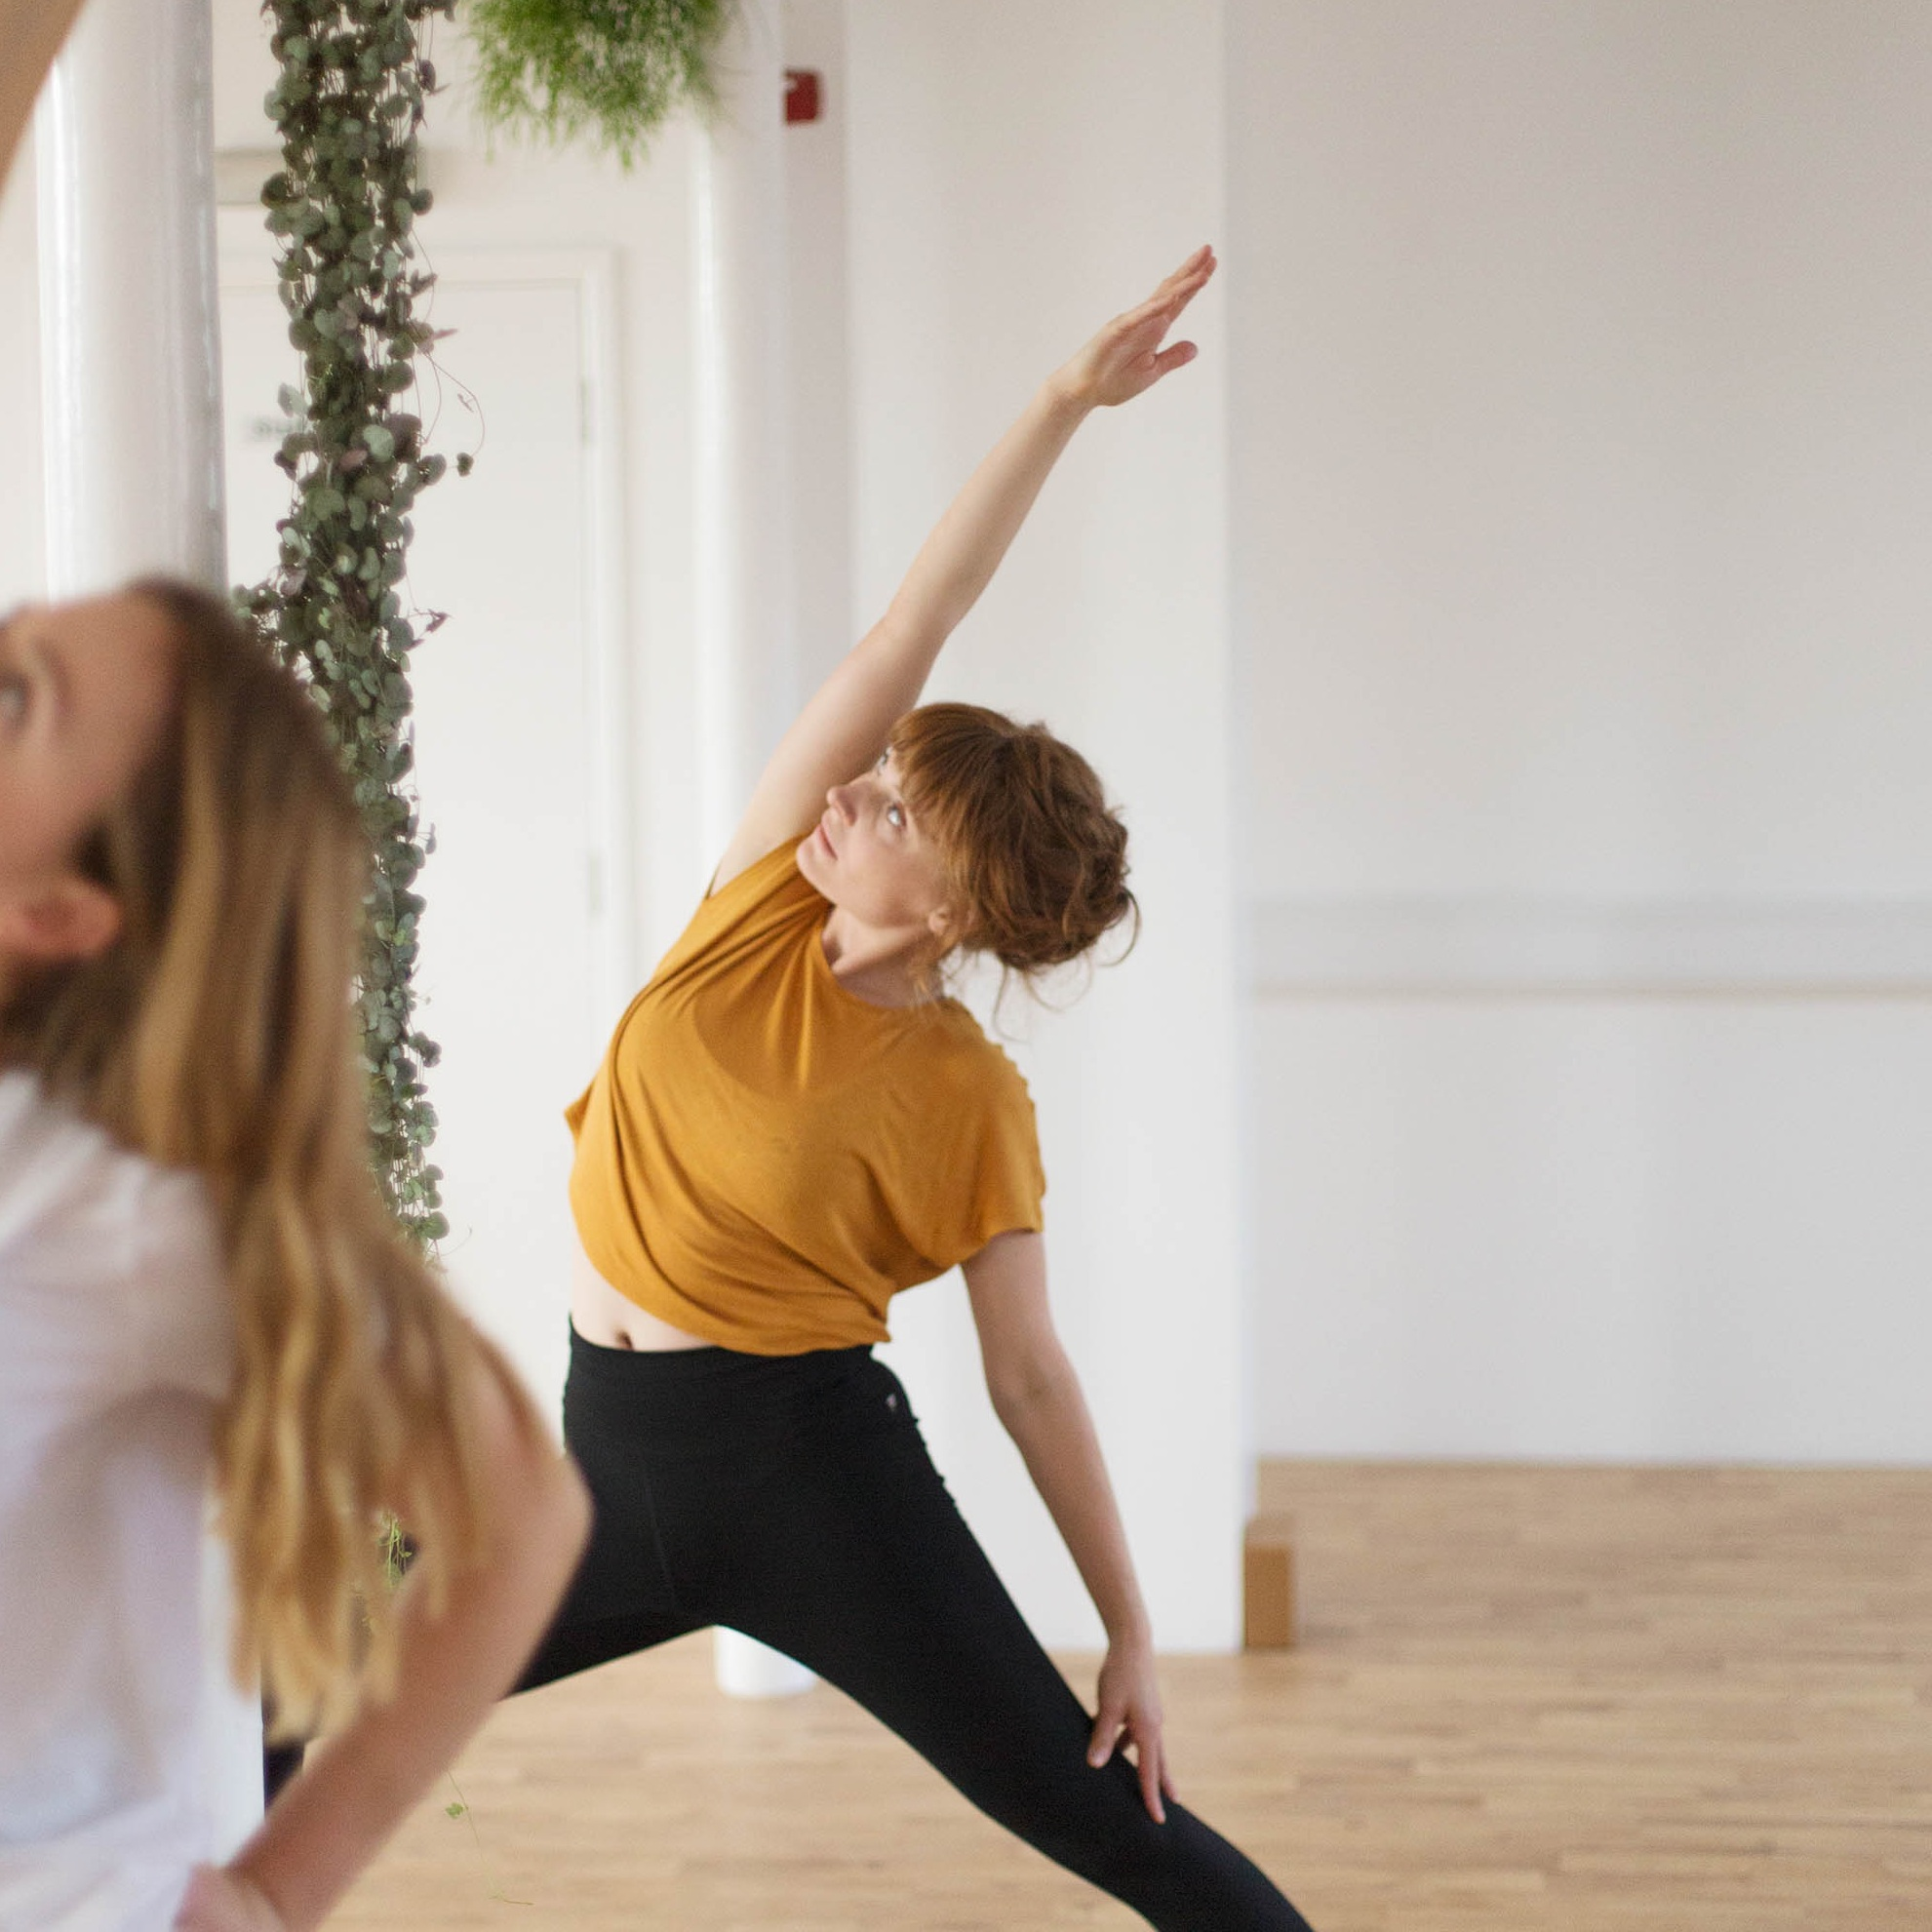 What class should I come to? - Check out our timetable for one of our classes especially for beginners!Coming to a beginners class means you'll quickly get familiar with the poses and postures in yoga and feel comfortable going to other classes.